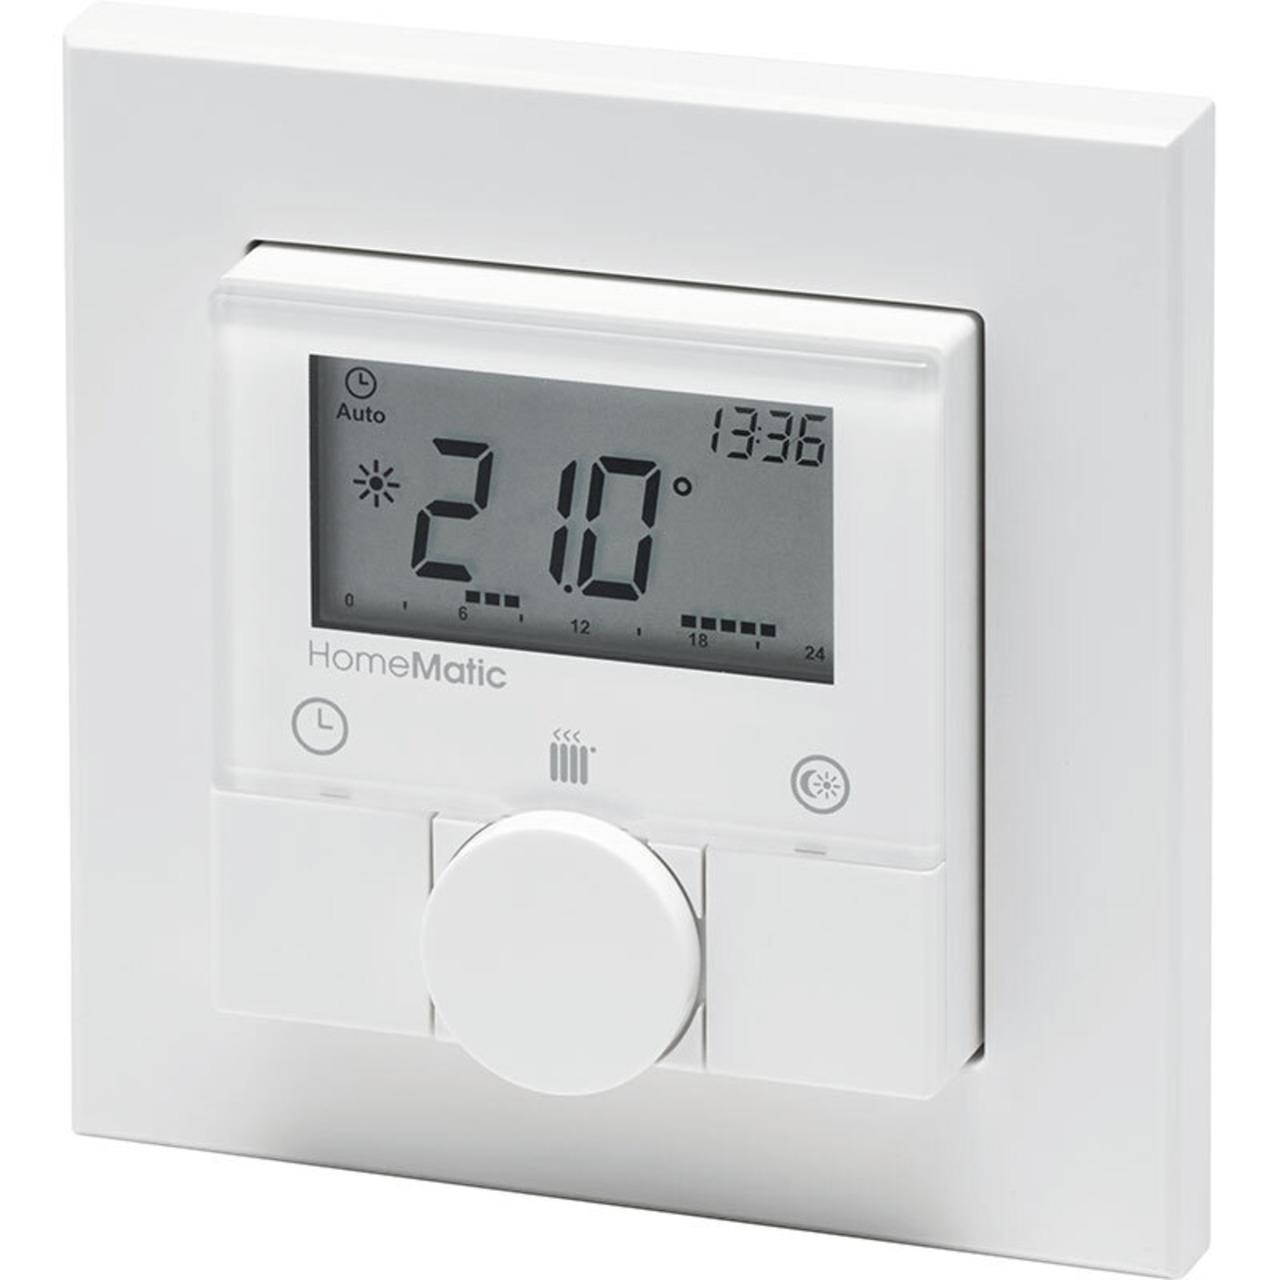 Homematic Funk-Wandthermostat HM-TC-IT-WM-W-EU für Smart Home / Hausautomation